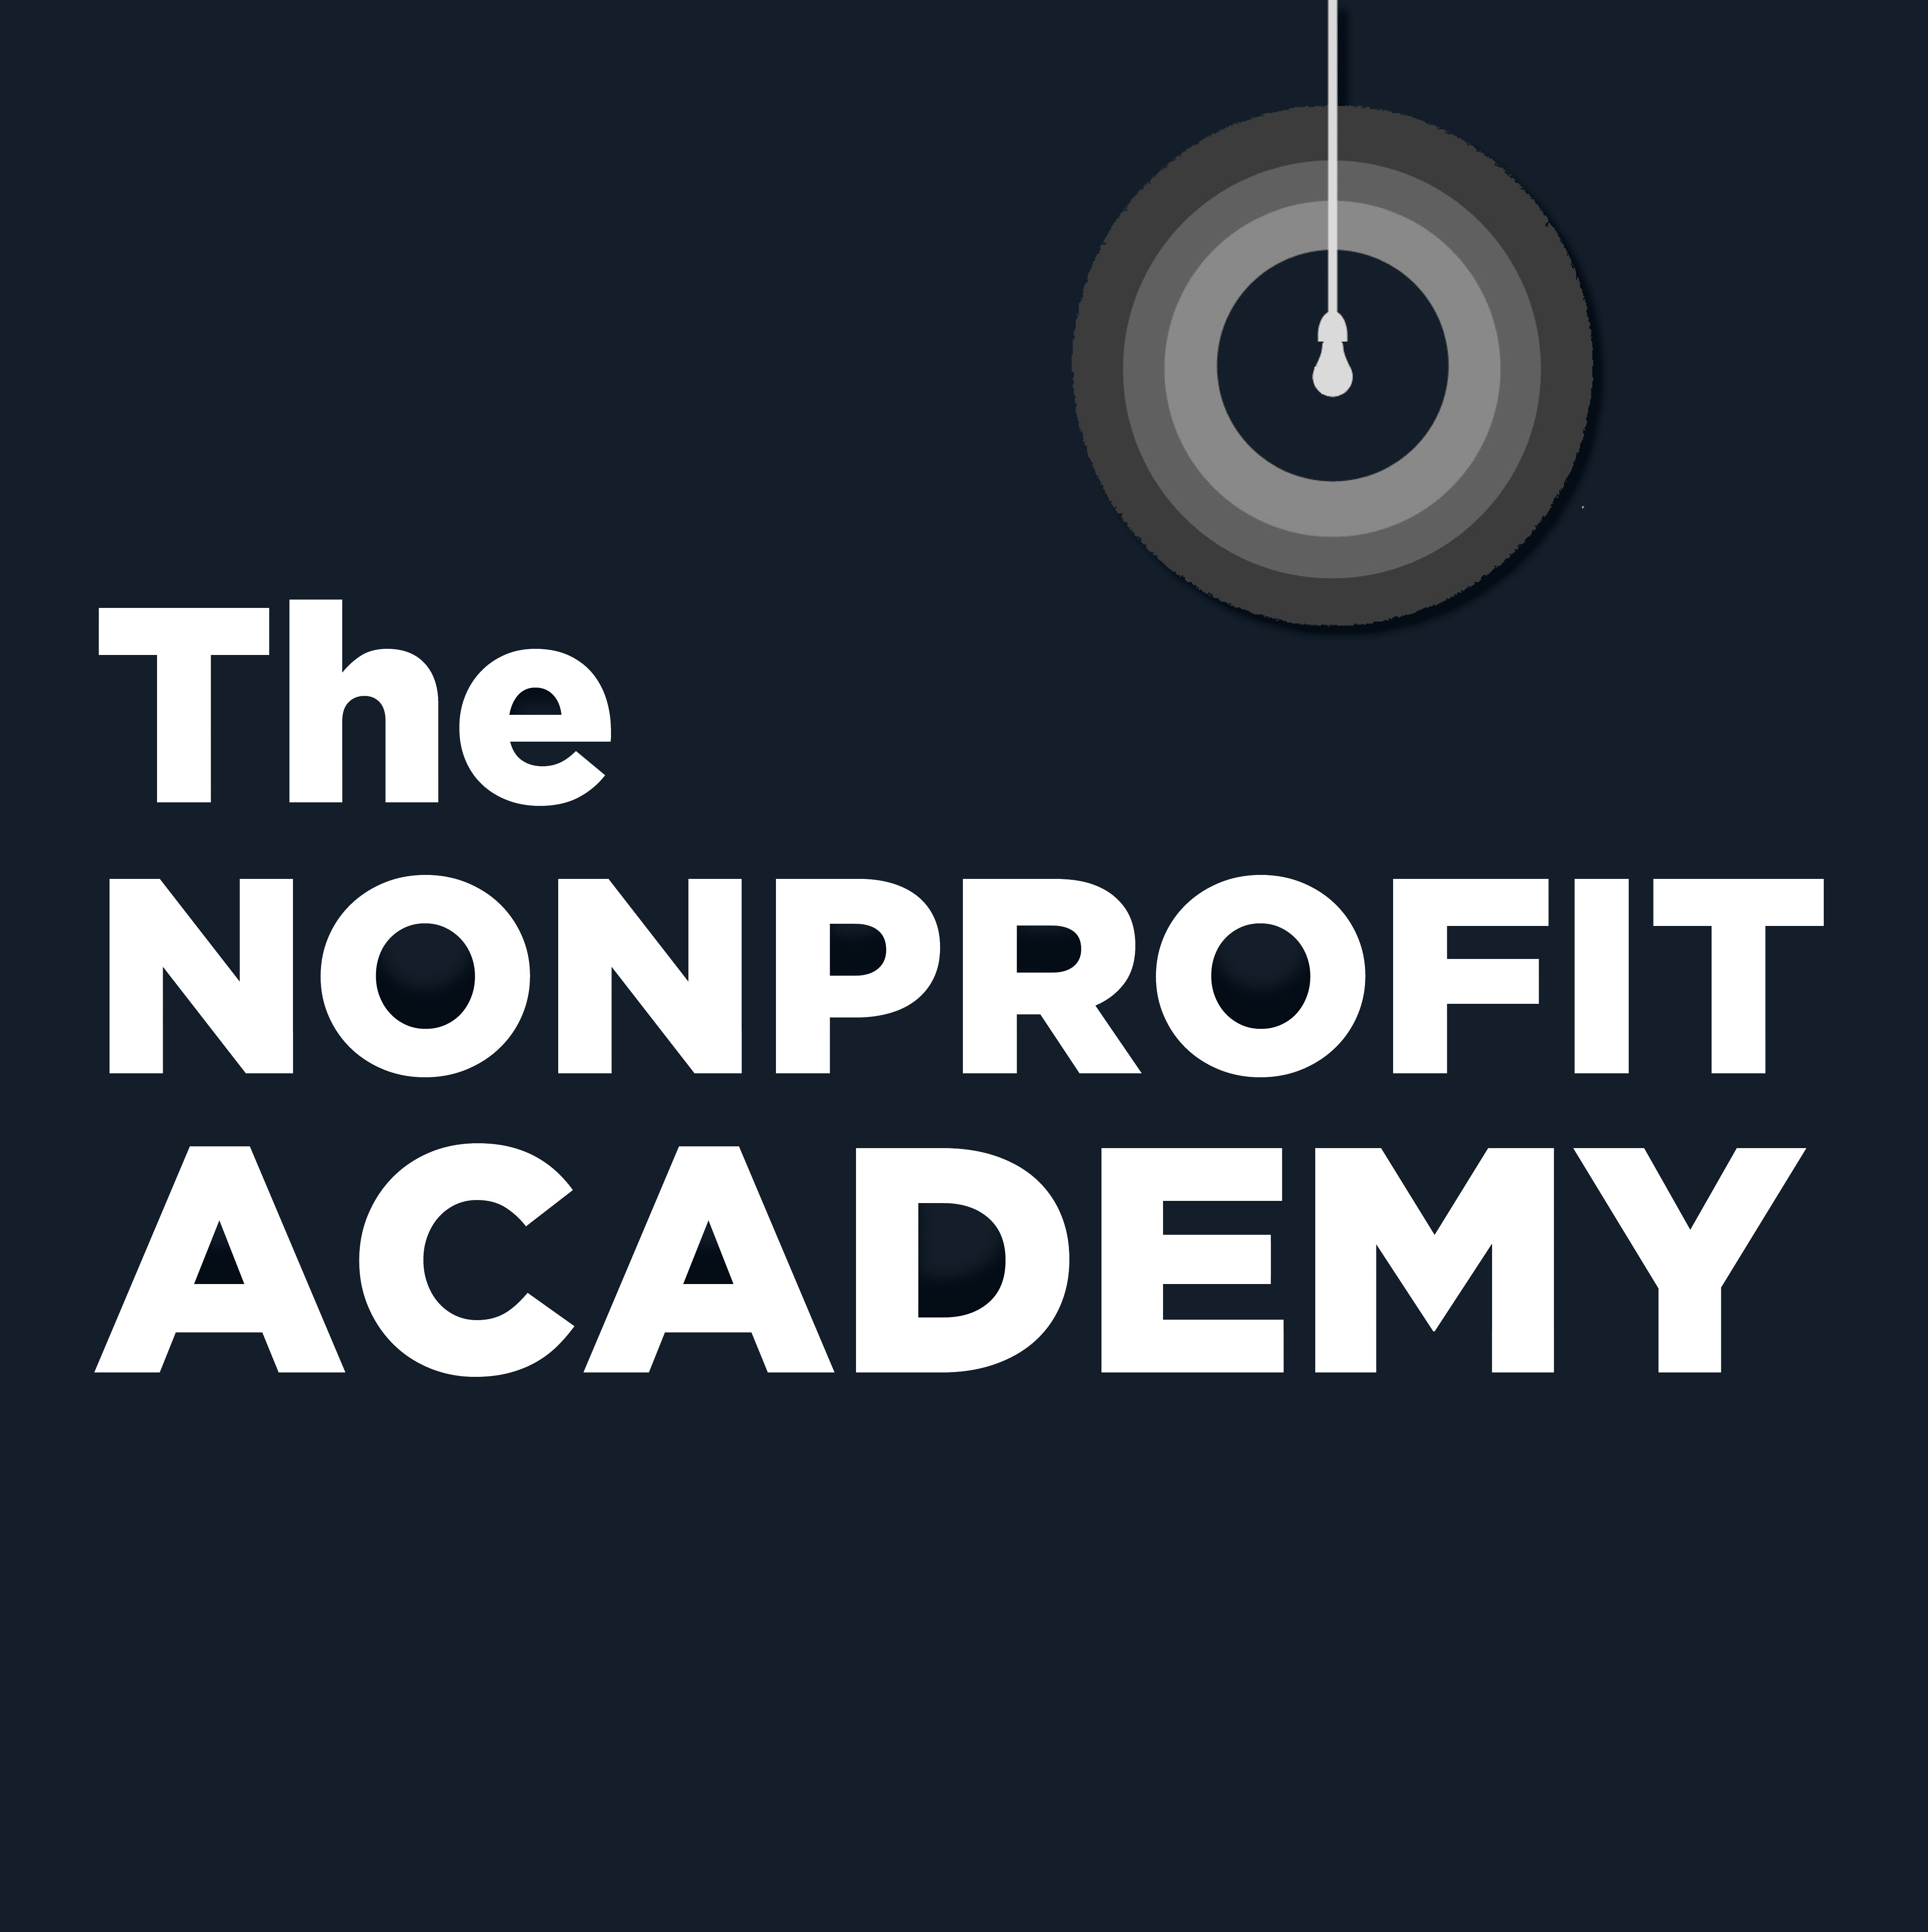 Click to learn more about The Nonprofit Academy - over 80 CFRE